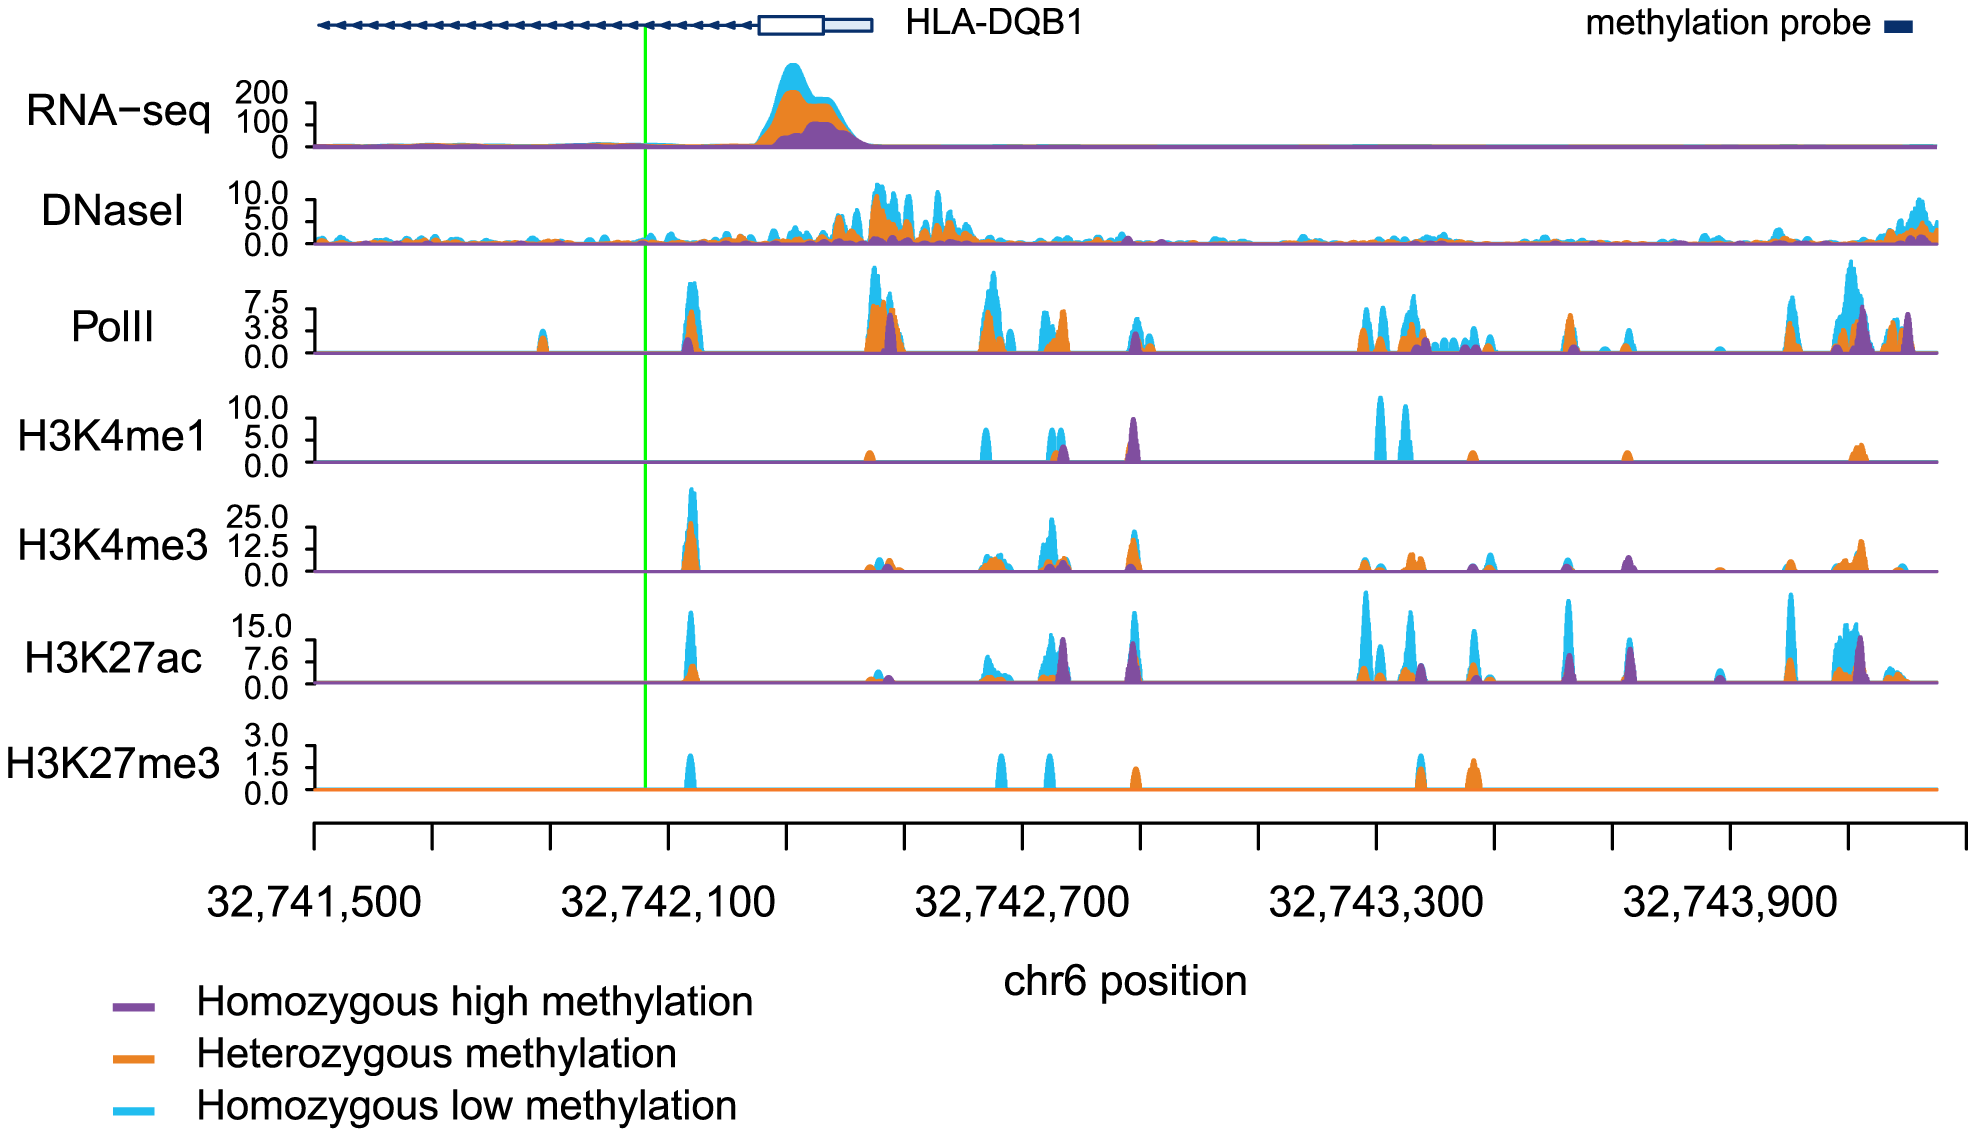 Read counts segregated by meQTL genotype for multiple regulatory phenotypes.